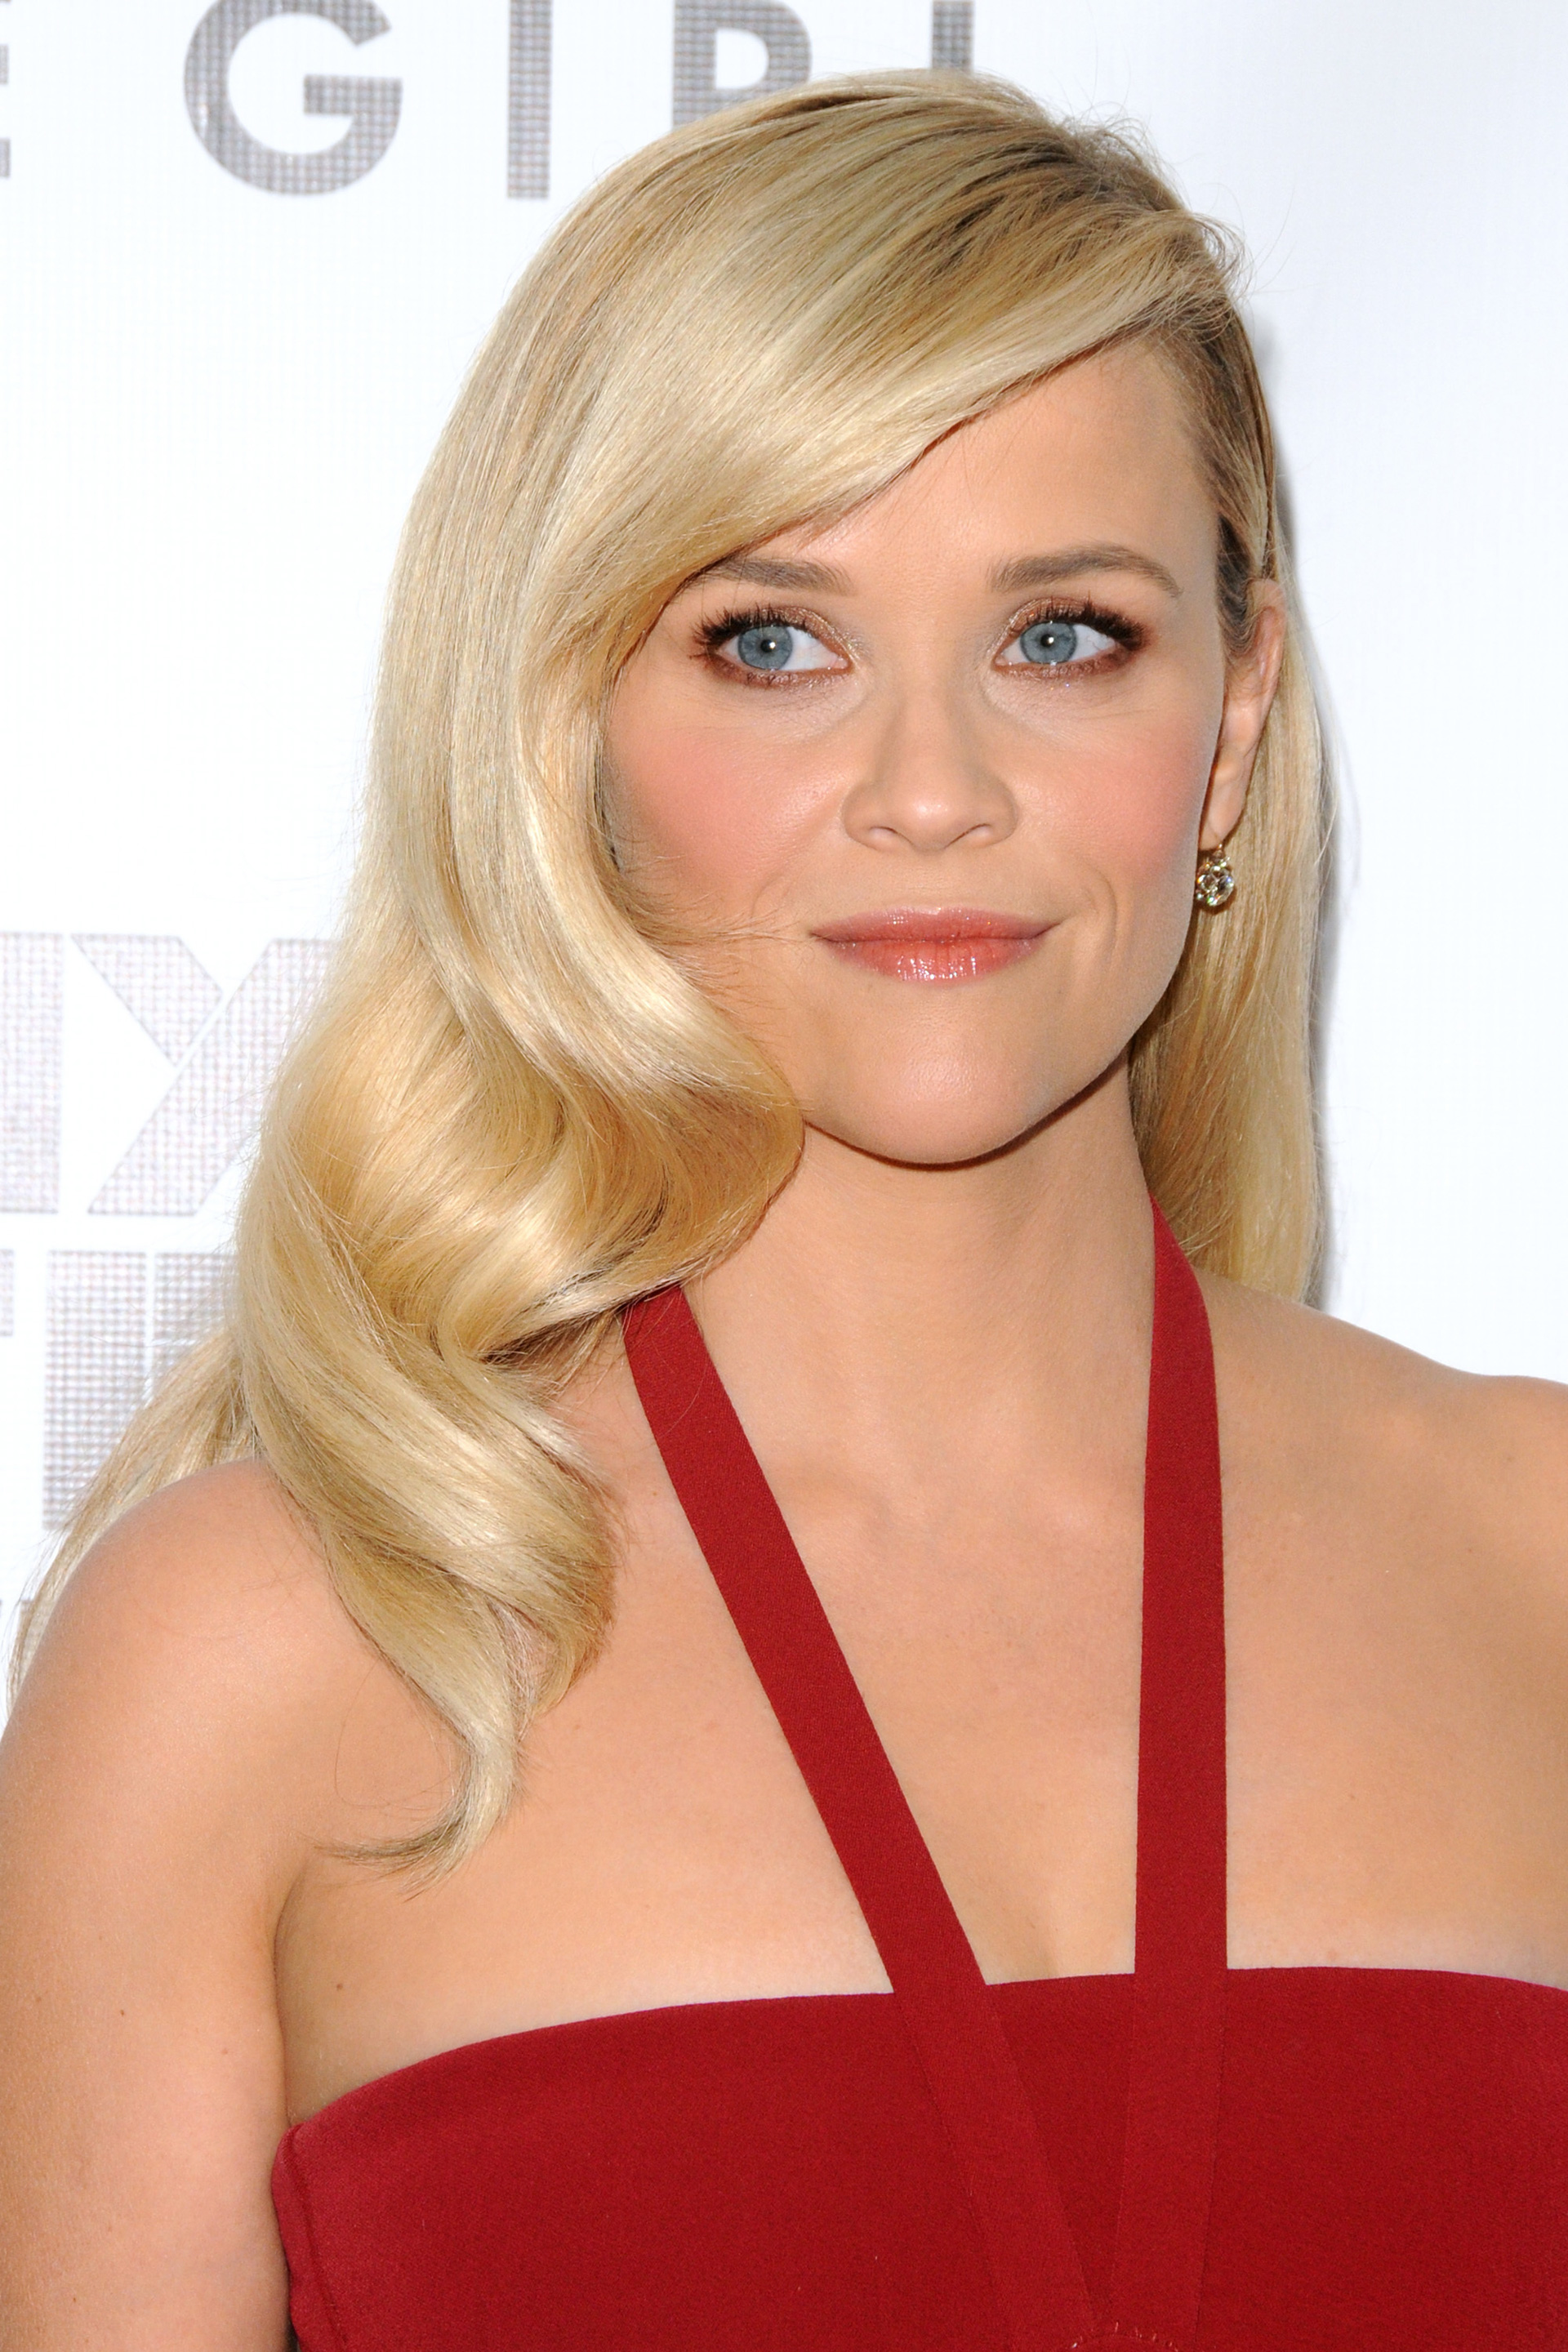 Best retro beauty look: Reese Witherspoon